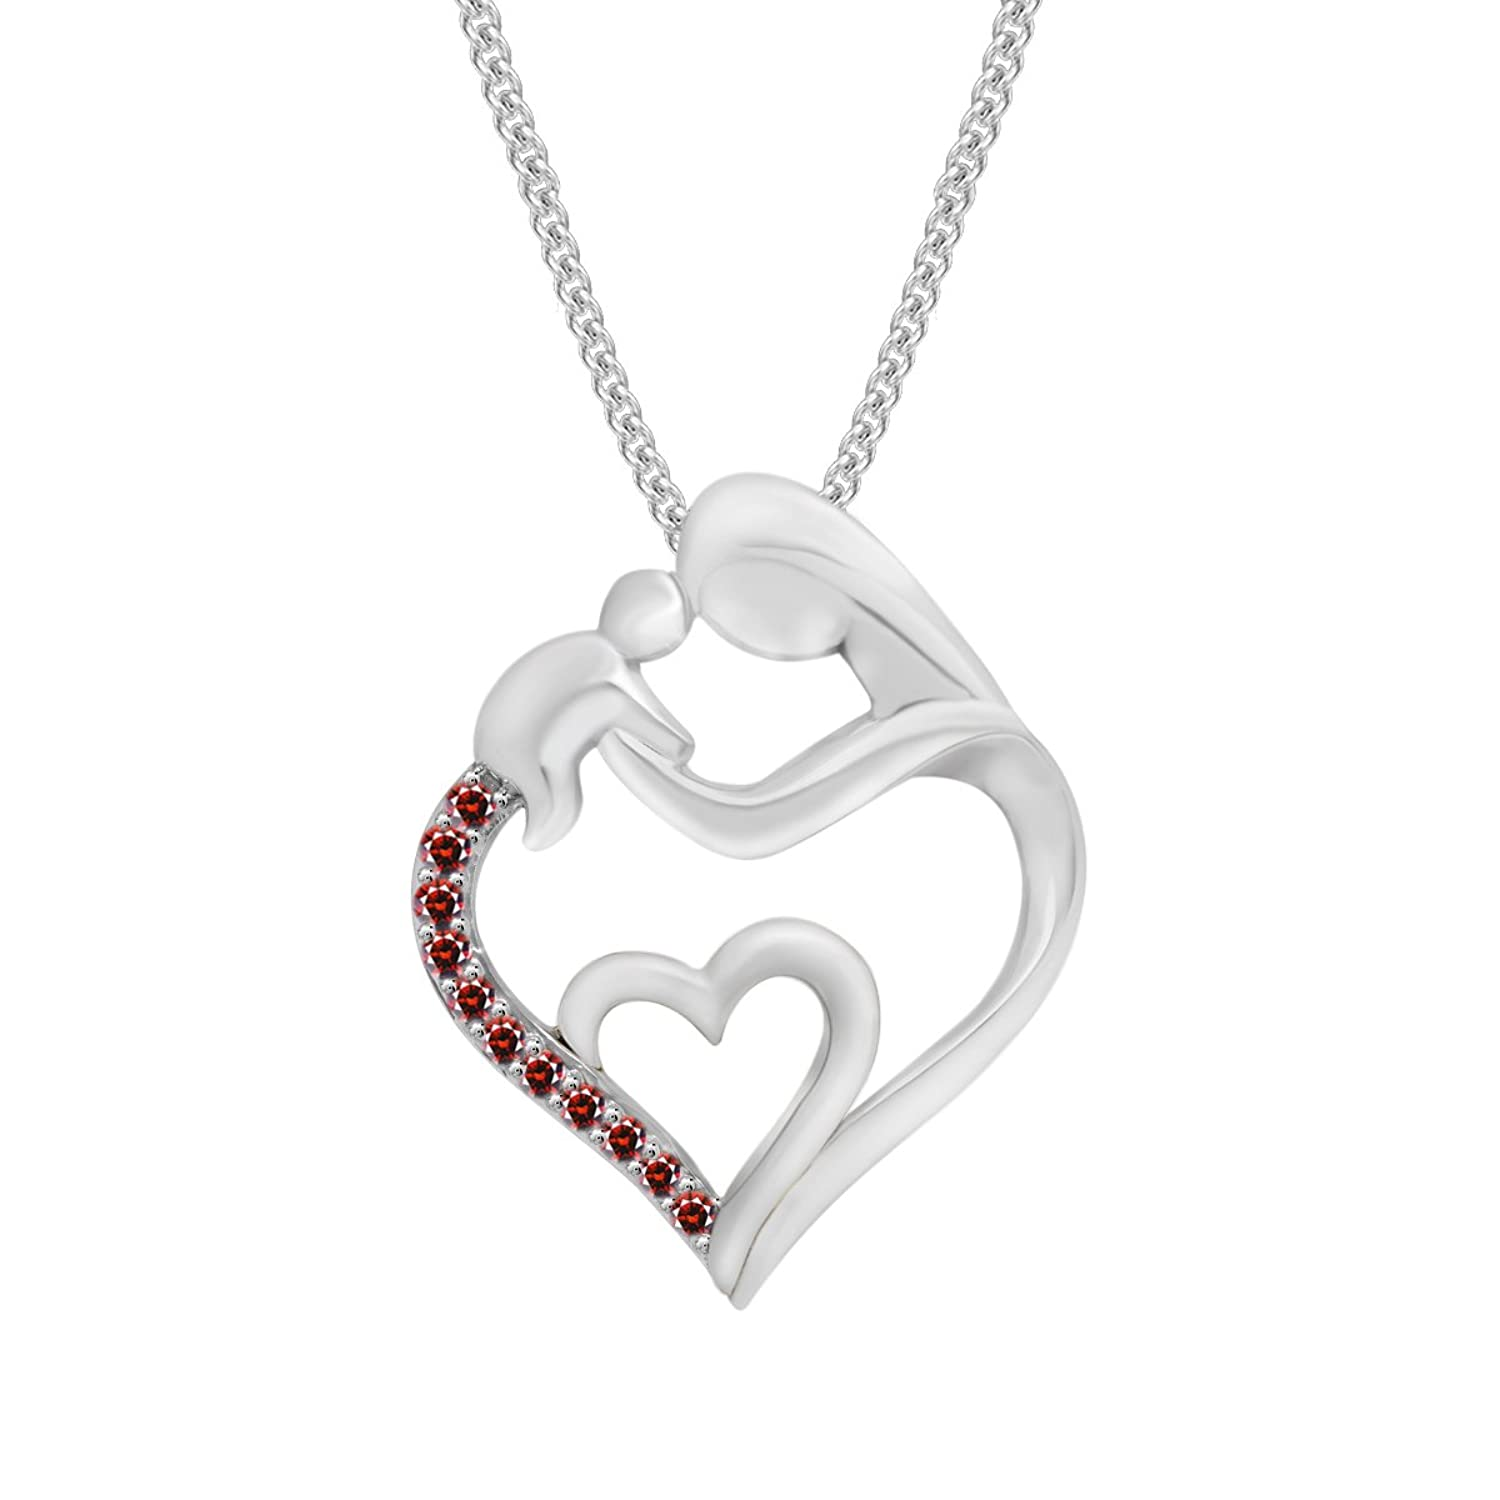 Pretty Jewellery Round Red Garnet Mom & Child Heart Pendant in 14K White Gold Fn 925 Silver W/ Chain